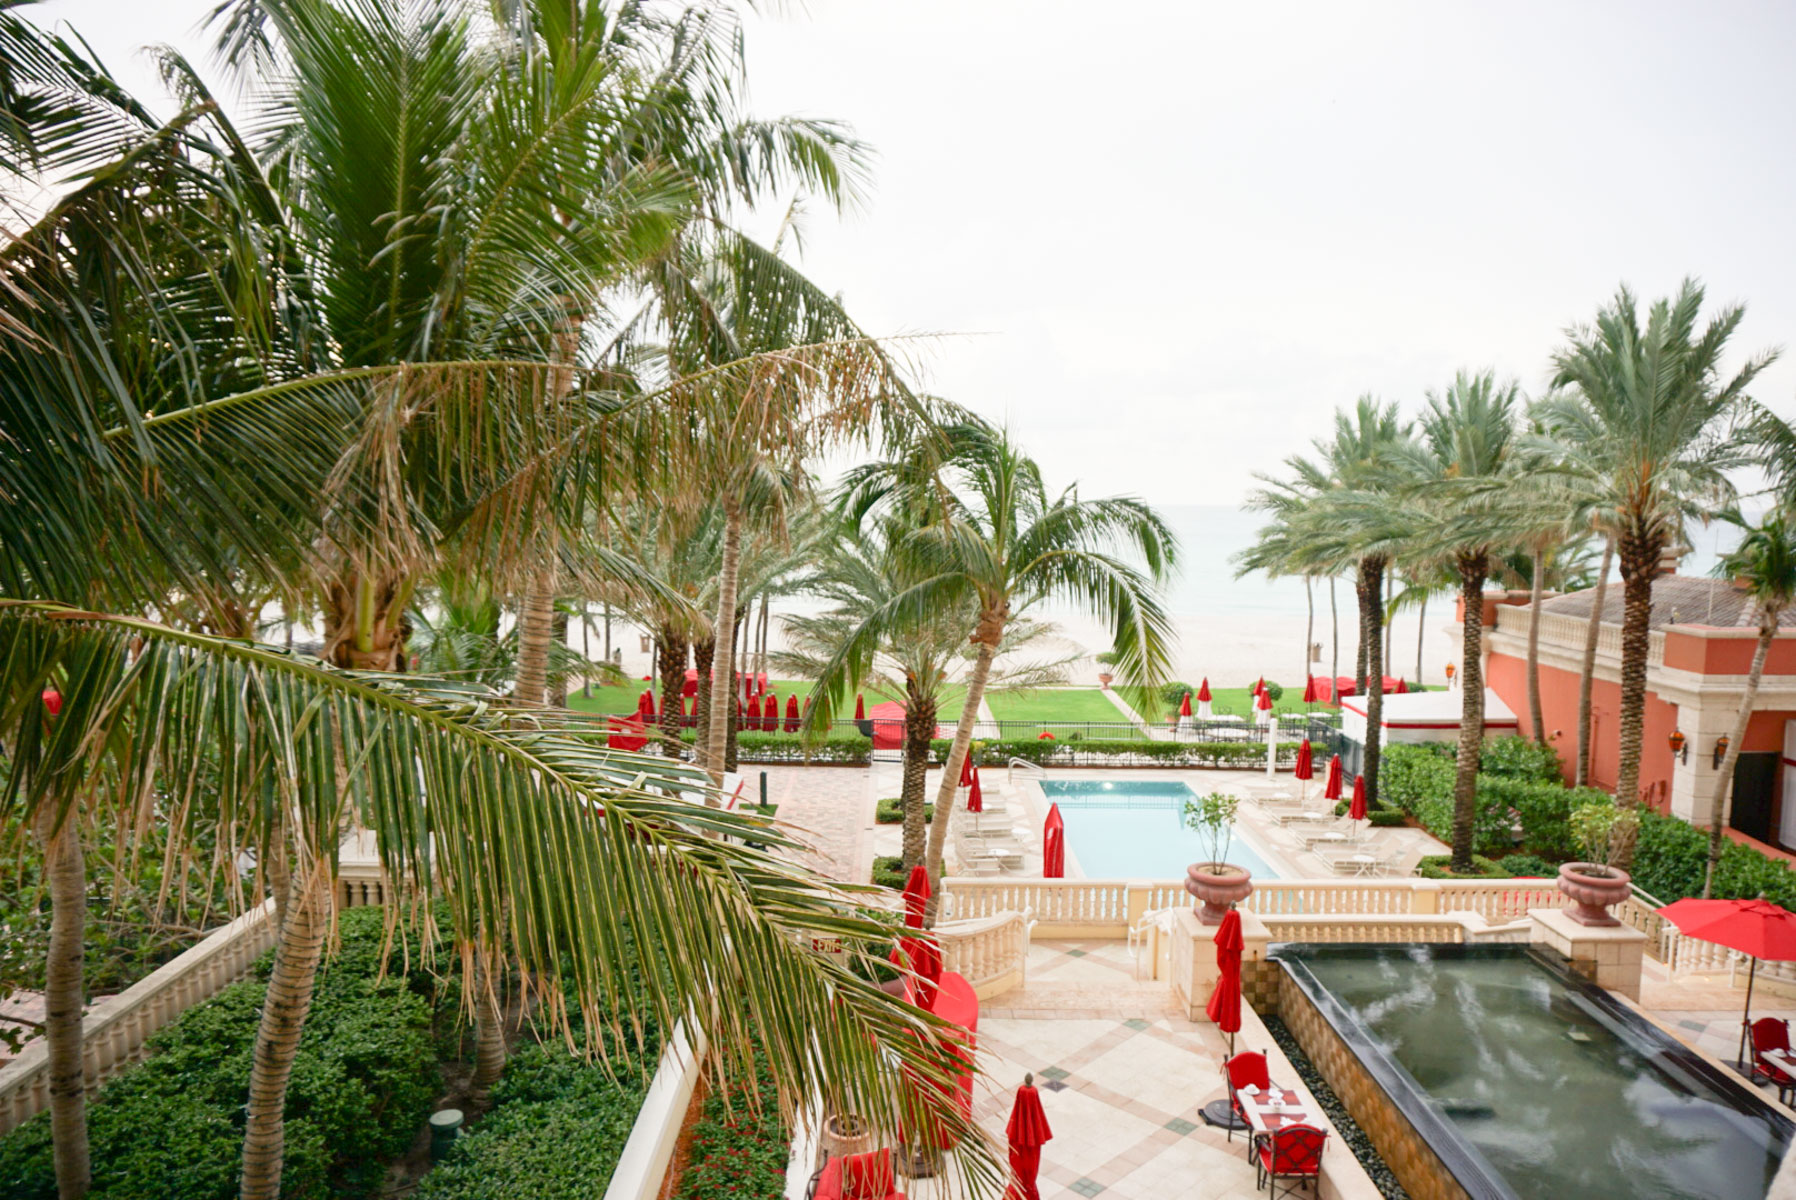 Acqualina Resort Reviews_AddieBell_Best_US_Getaway-8568.jpg